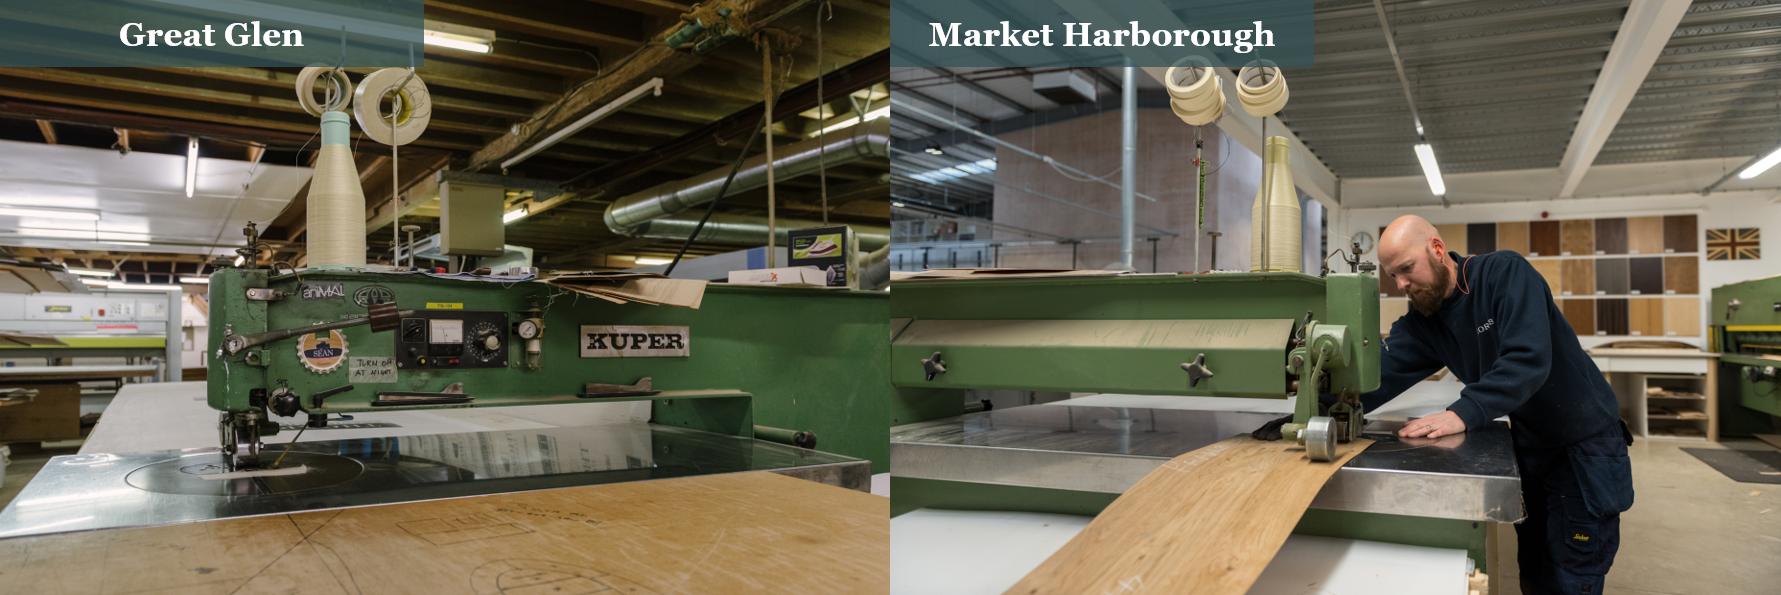 Thorpes Joinery - Veneer department: Great Glen Vs Market Harborough